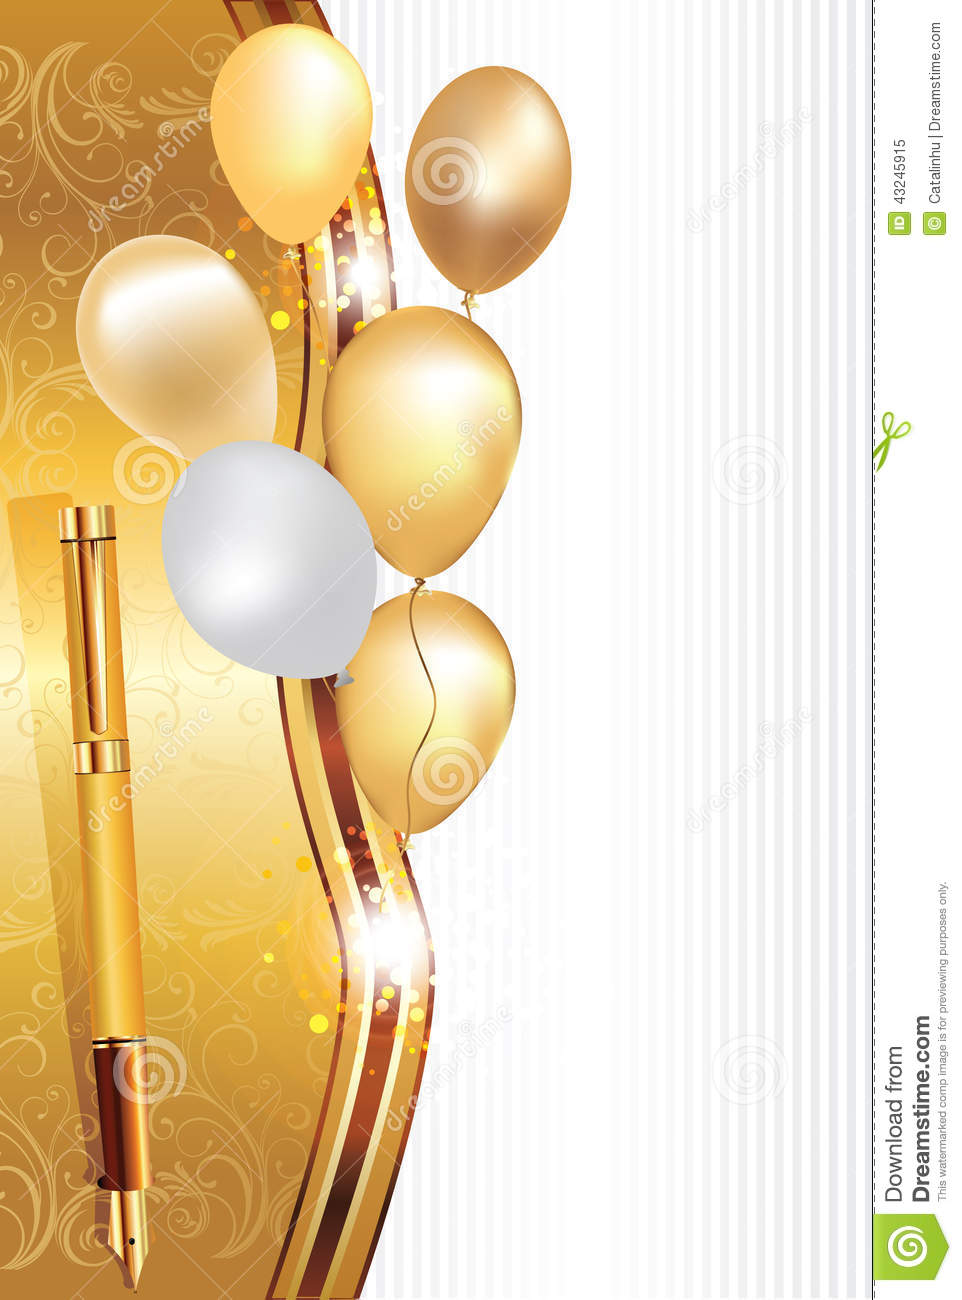 Elegant holiday background with ball0ons and an elegant pen (fountain ...